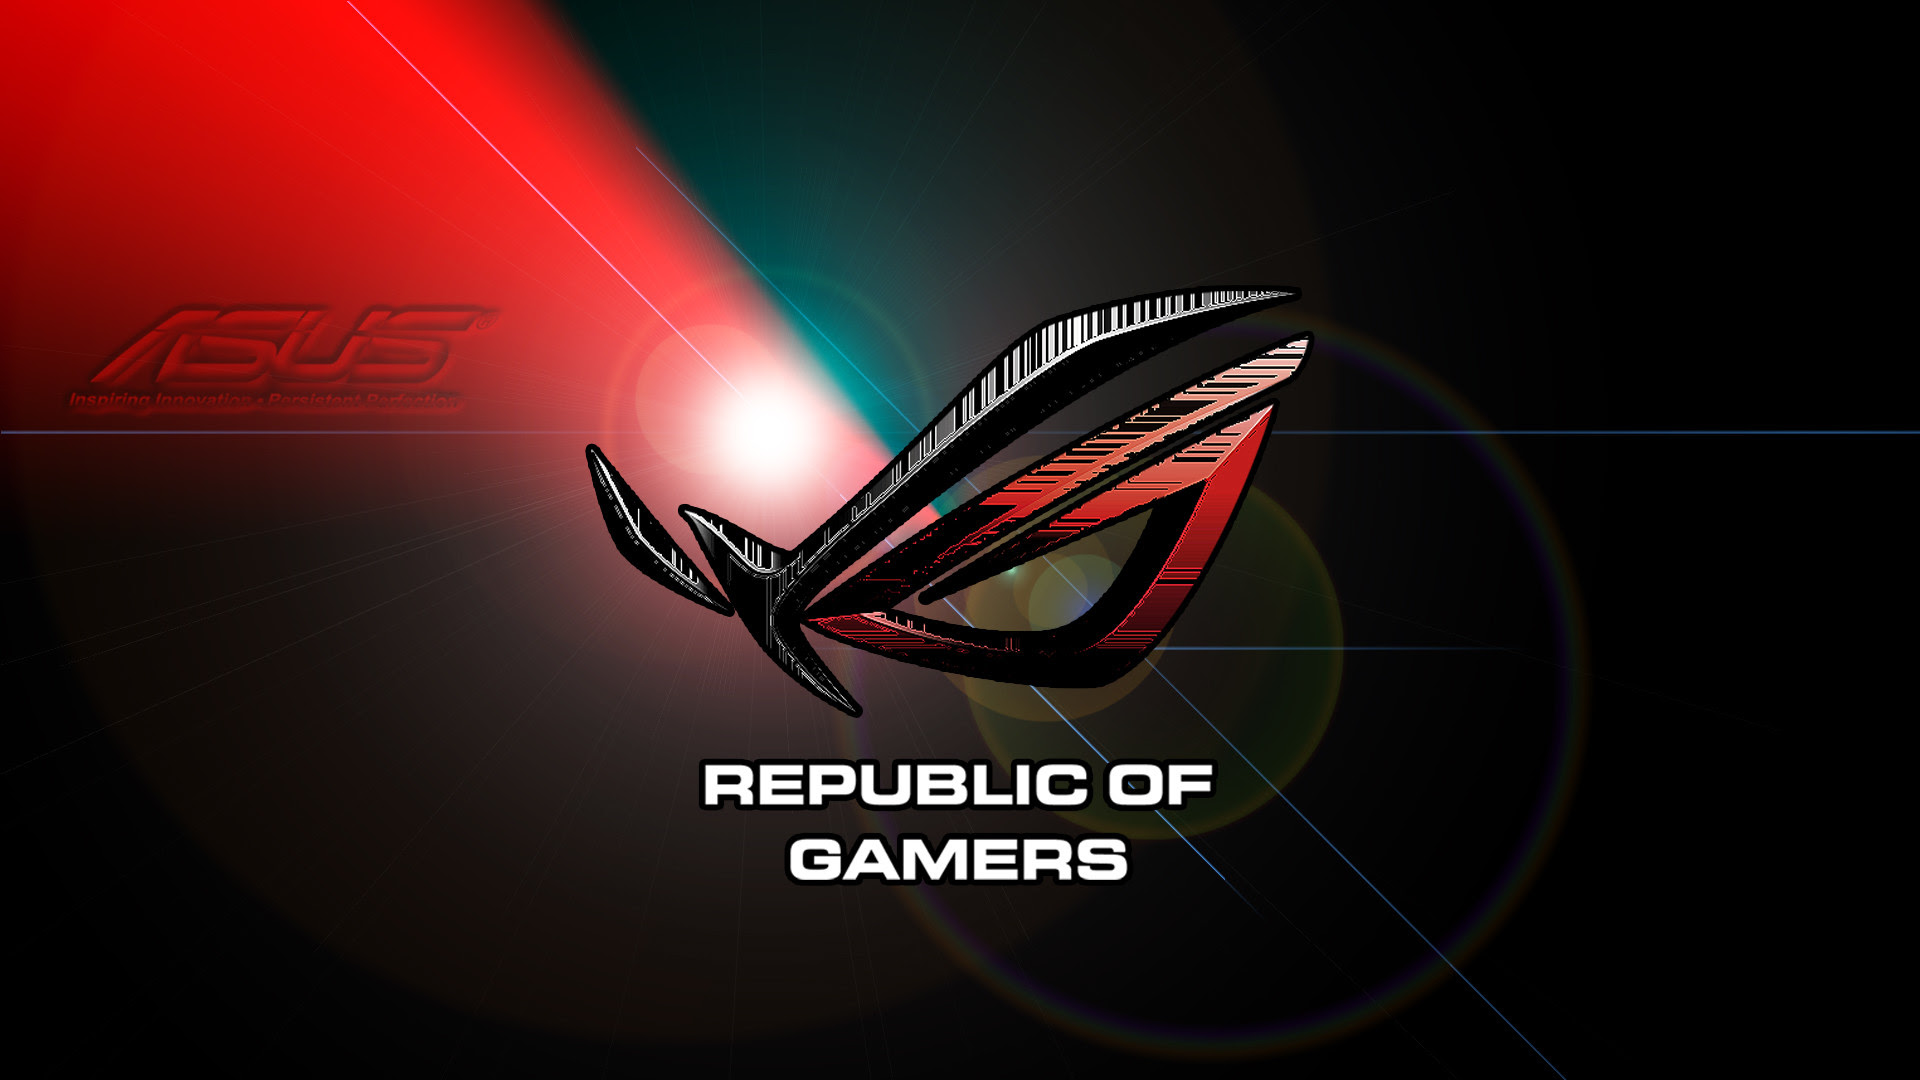 Asus Rog Wallpaper 1366x768 Wallpaper Hd For Android